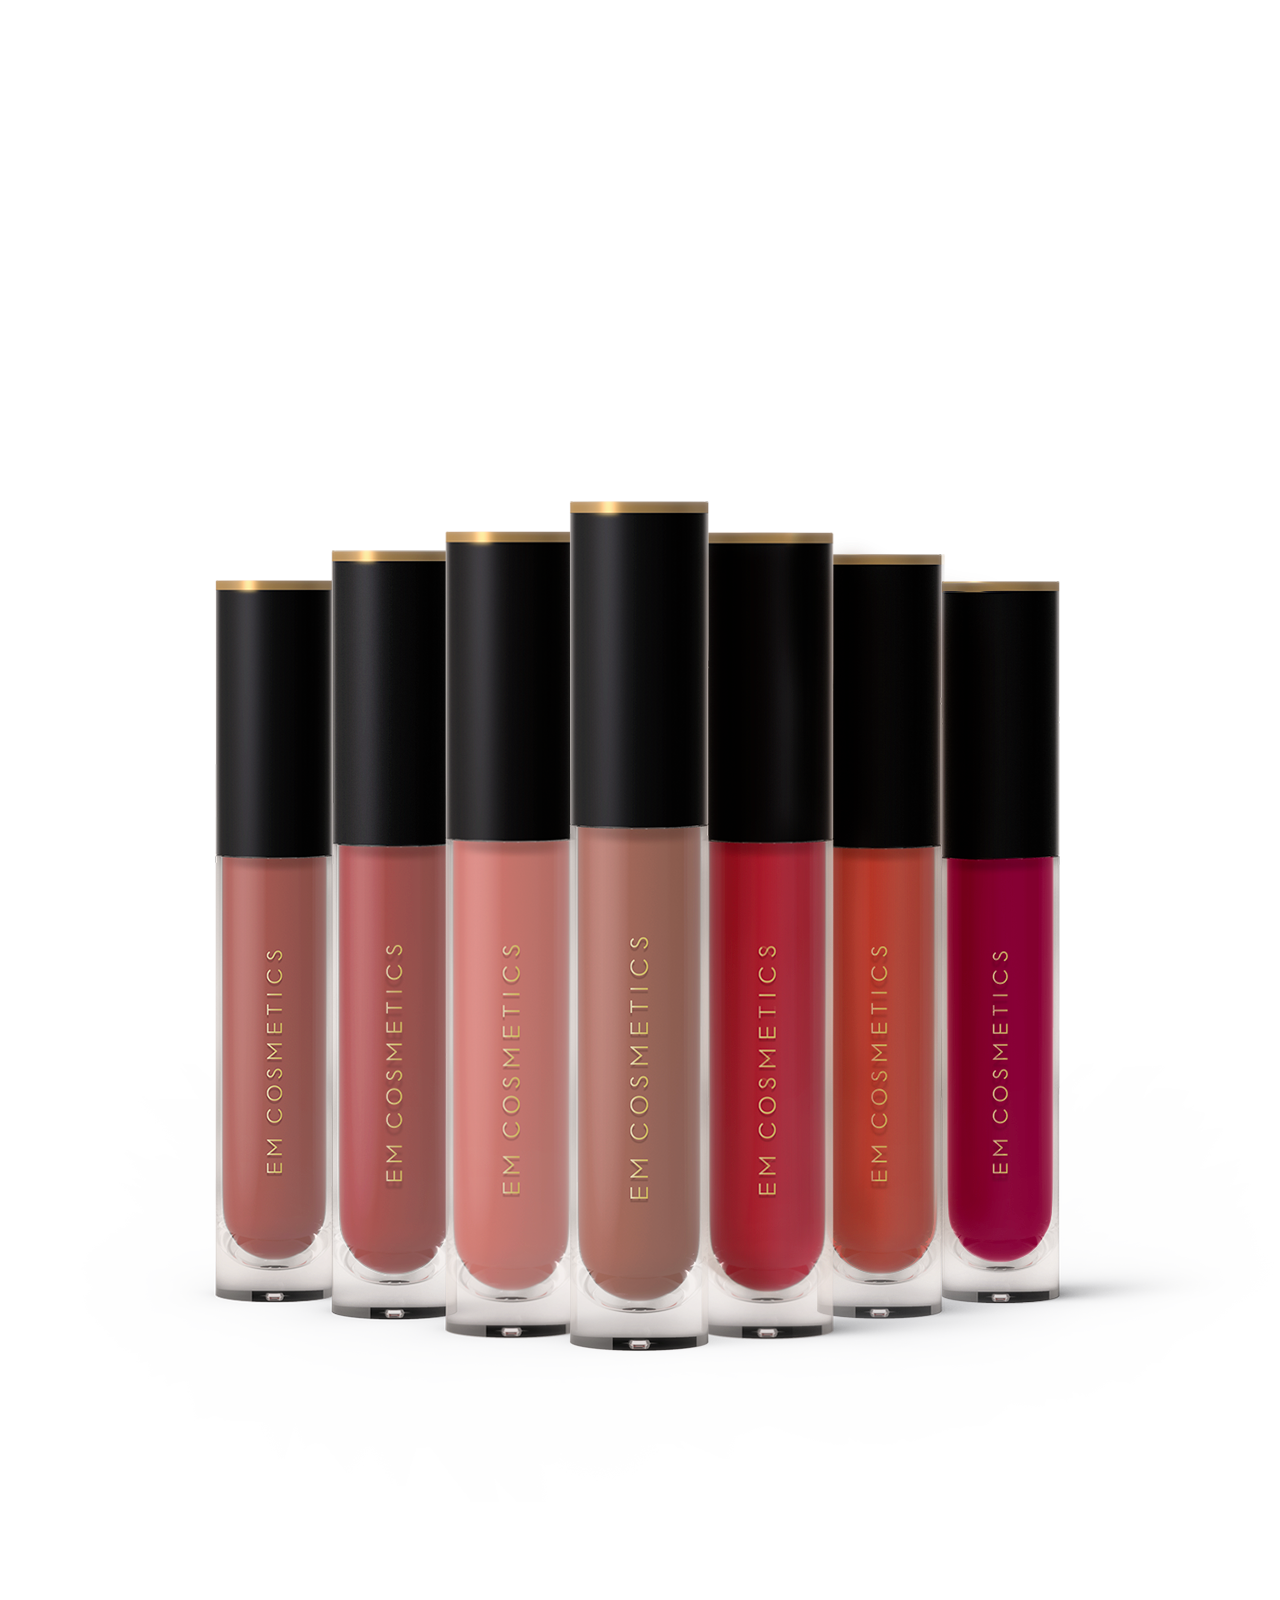 SUGAR INFINITE LIP CLOUD SET